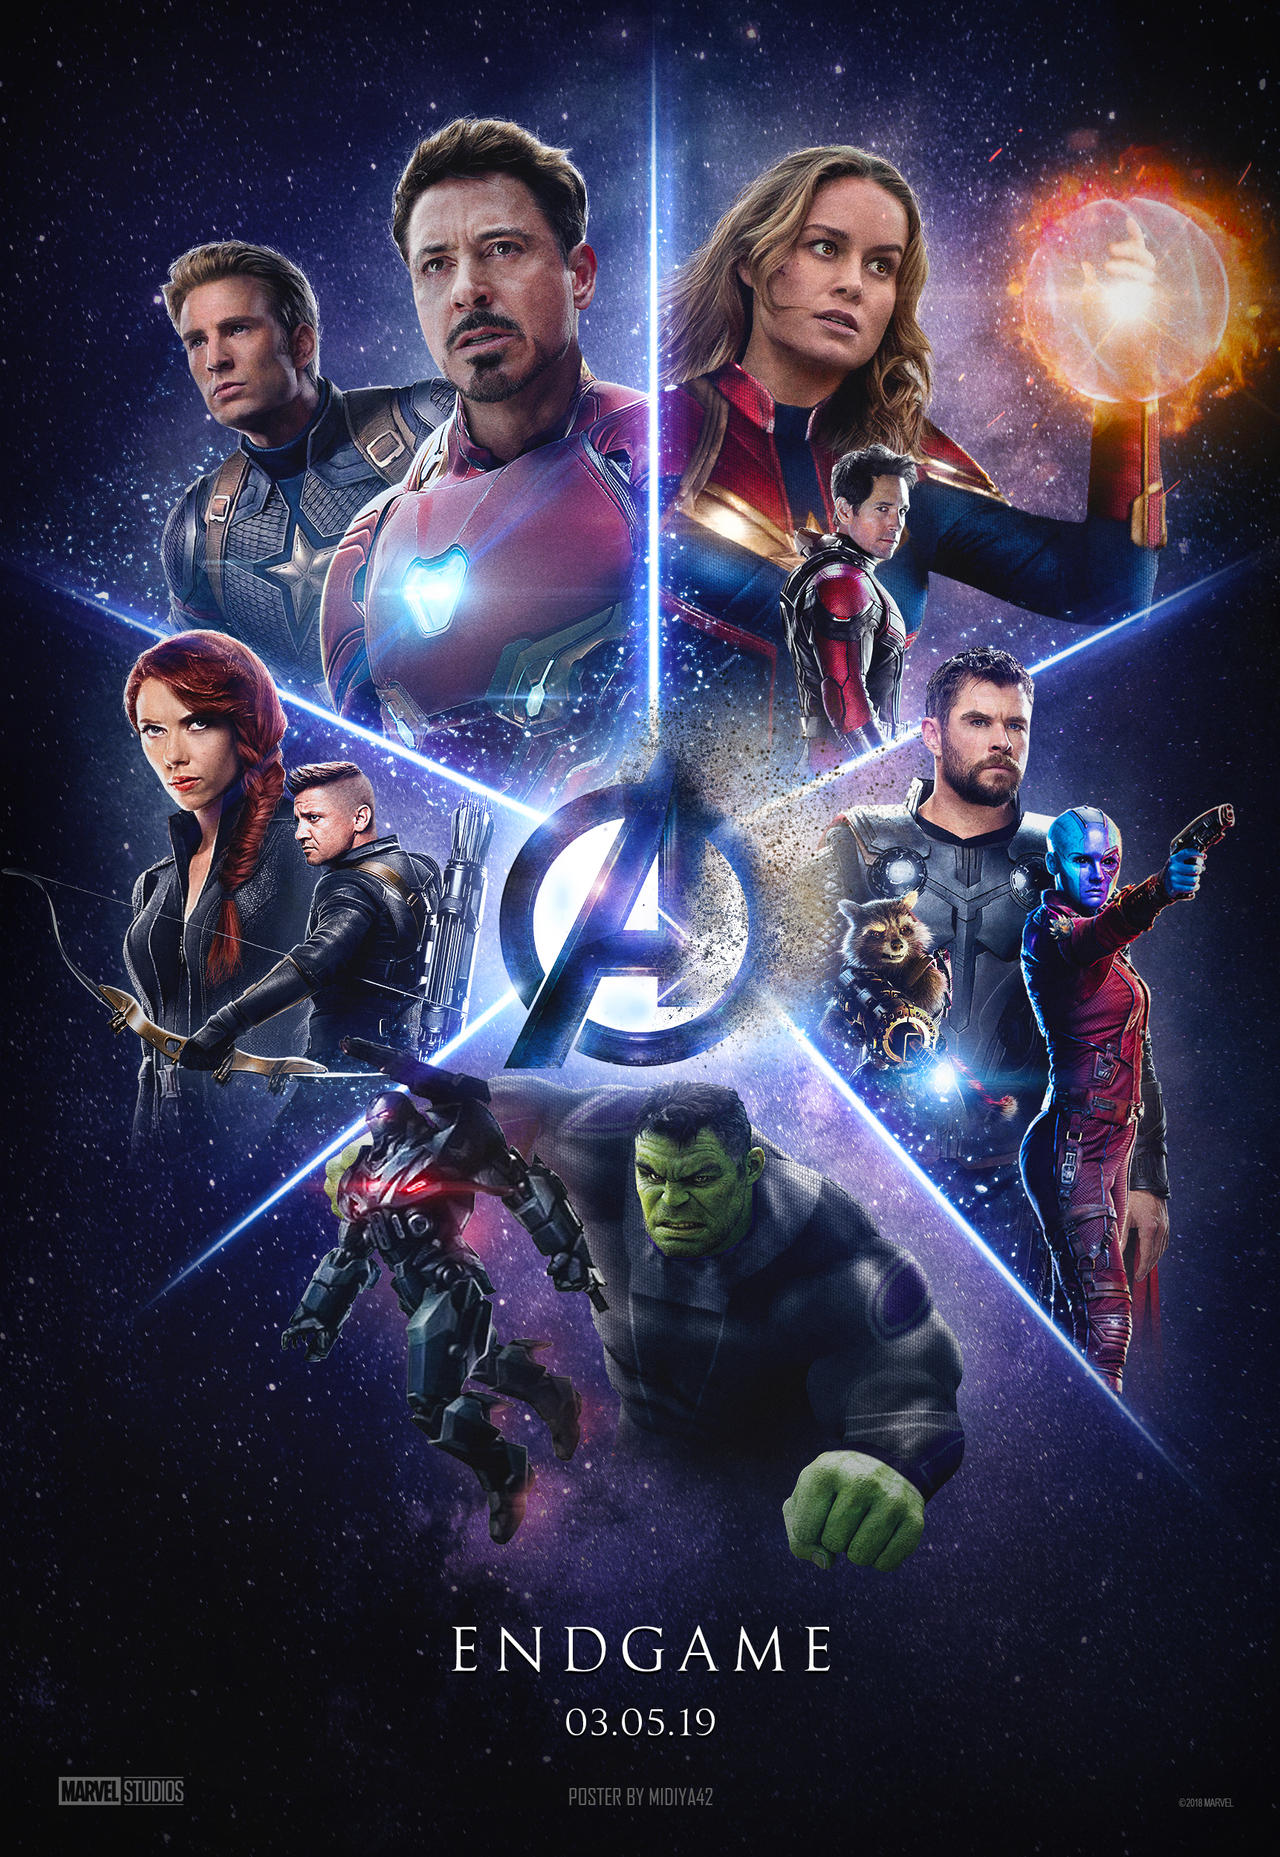 Avengers 4 \/ Endgame 2019 Poster by midiya42 on DeviantArt